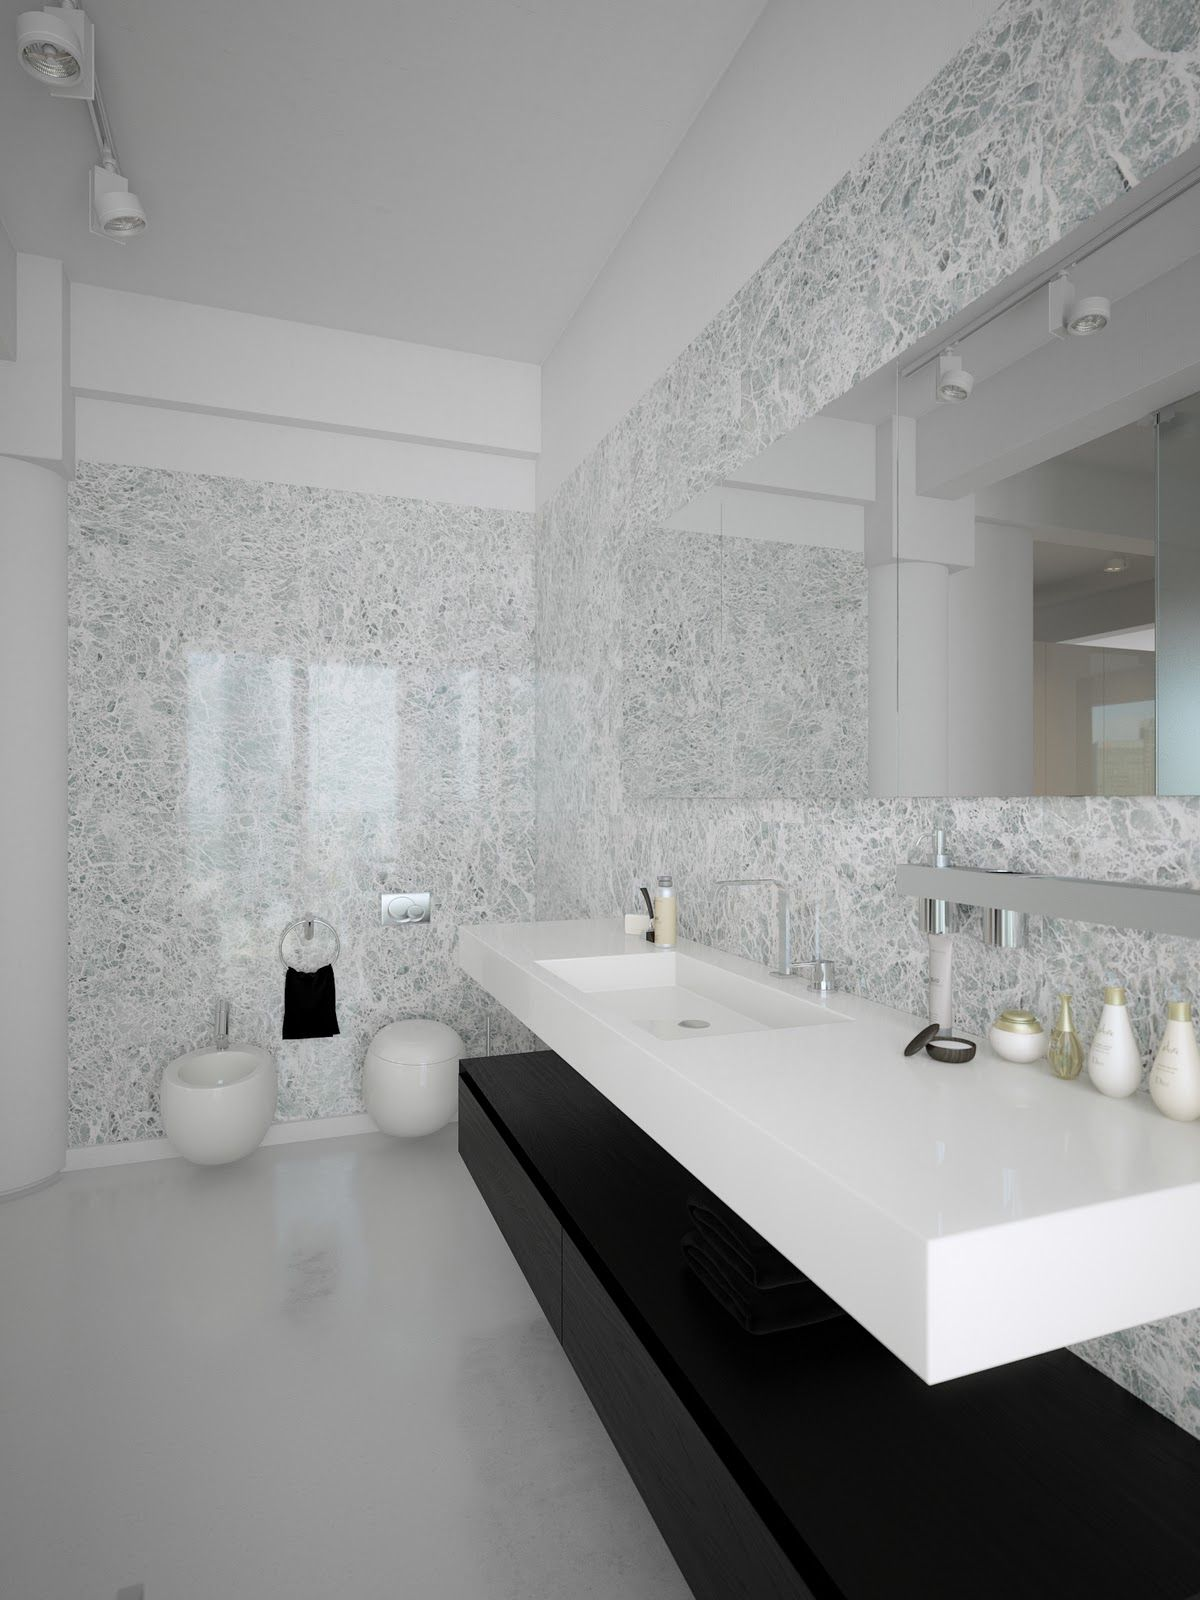 Interior, Awesome Black And White Lofts, Simplistic Yet Modern: Black White  Contemporary Bathroom Design White Marble Wall